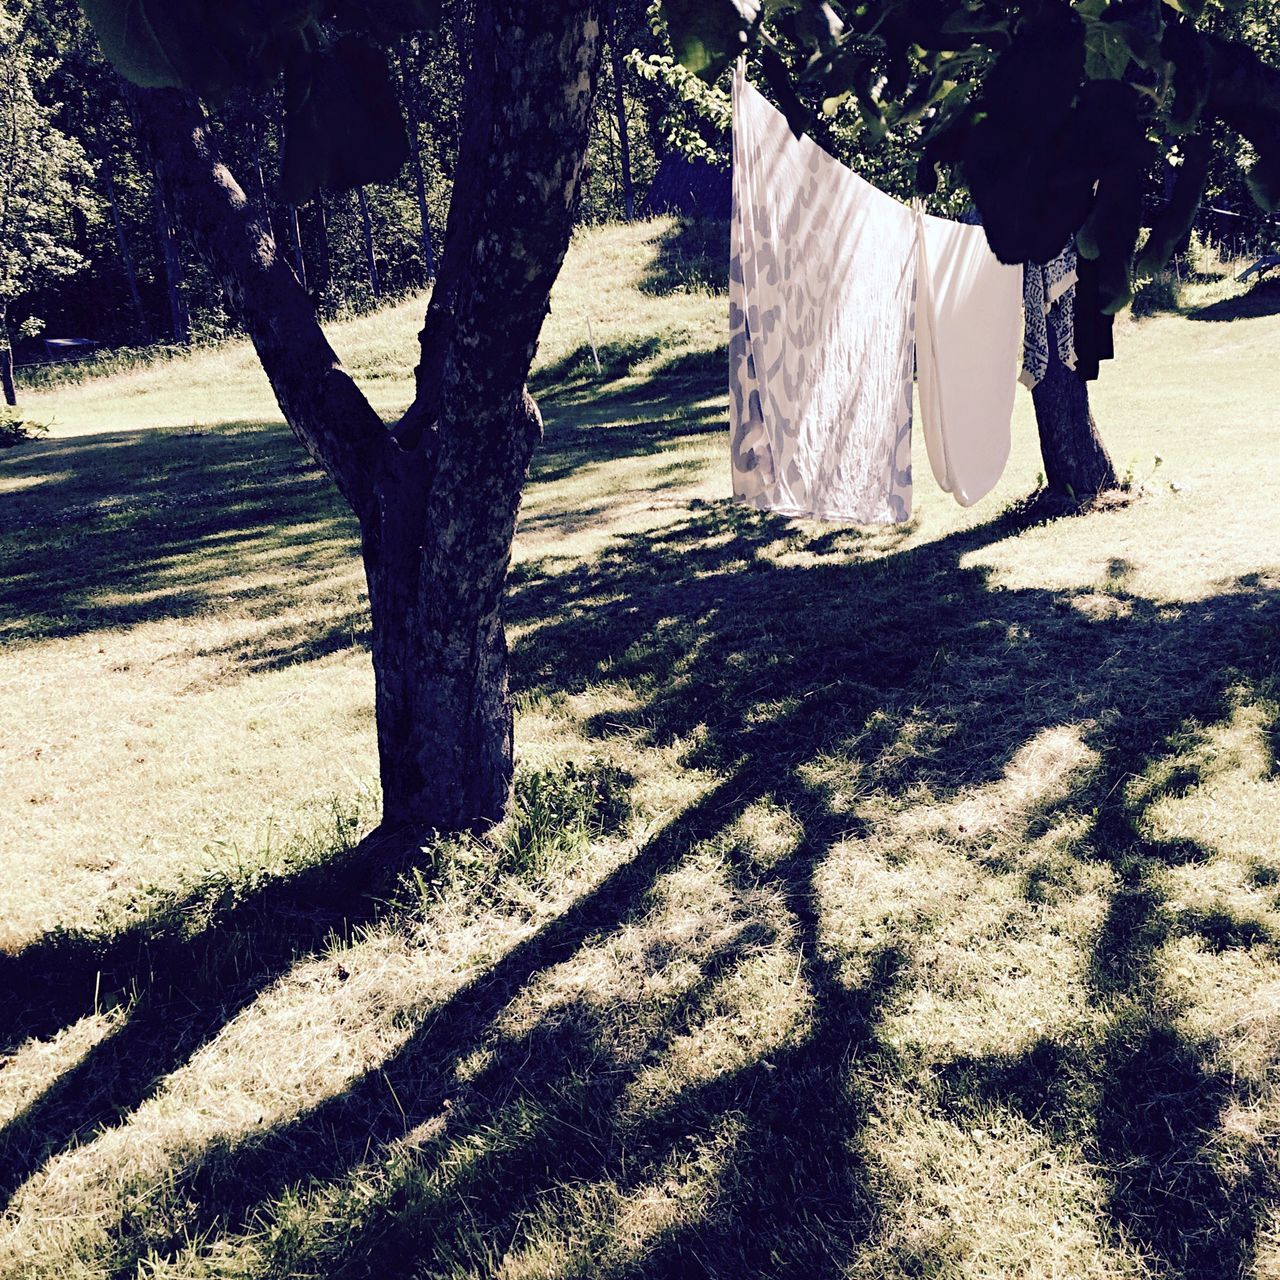 shadow, tree, sunlight, laundry, day, hanging, drying, tree trunk, nature, growth, outdoors, grass, no people